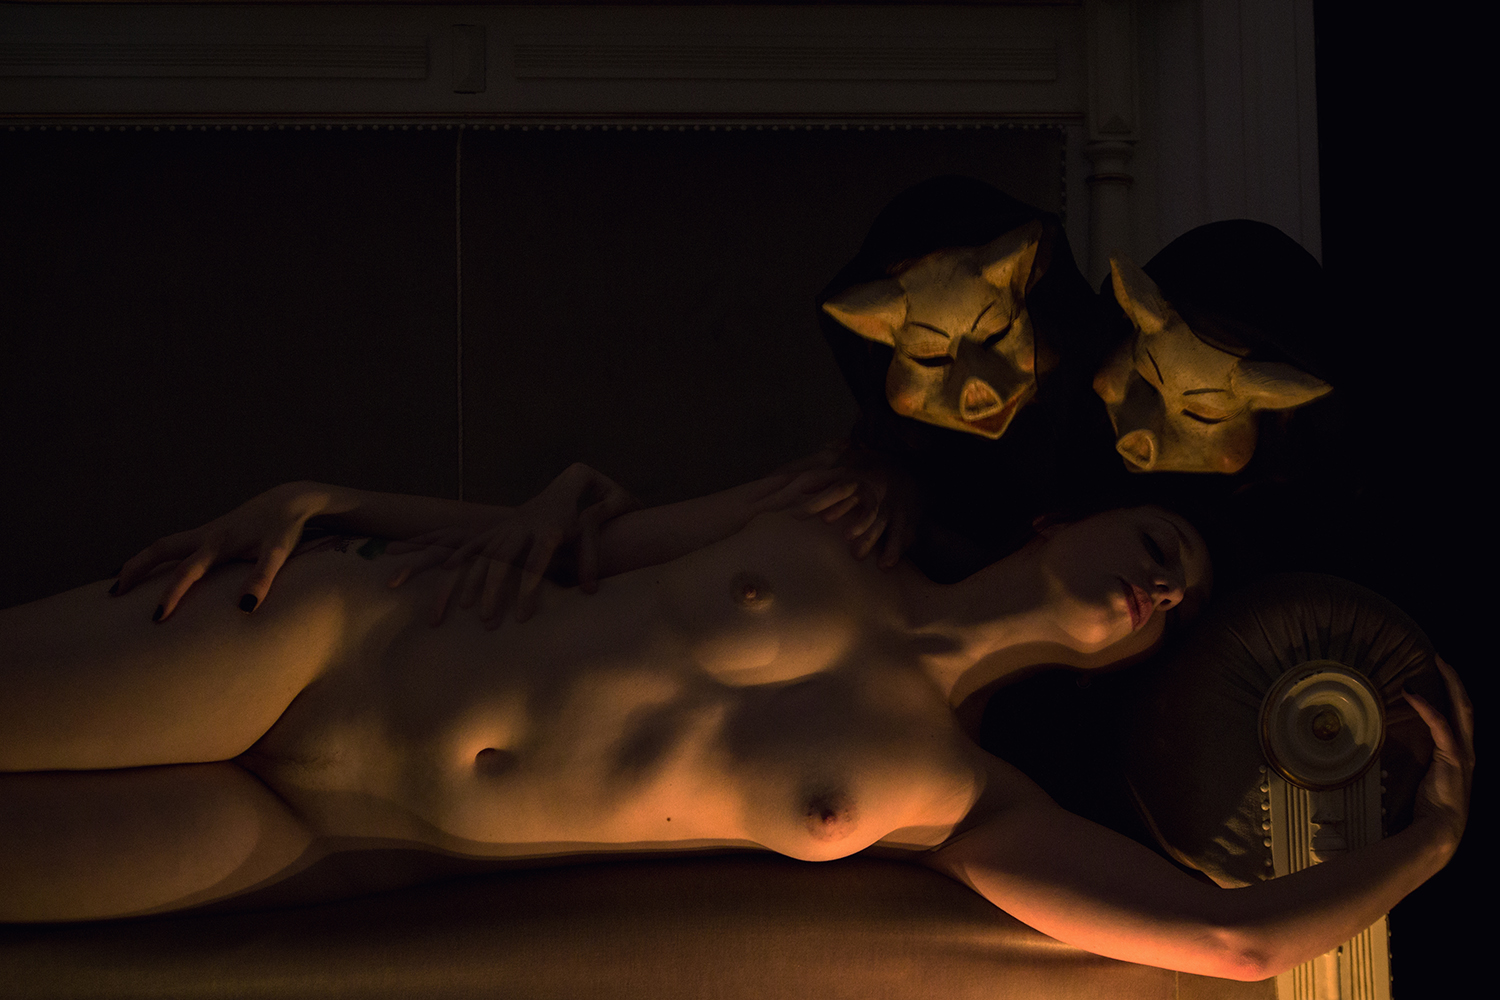 Elena Helfrecht, Nightmares - woman in dark room with pig masks above